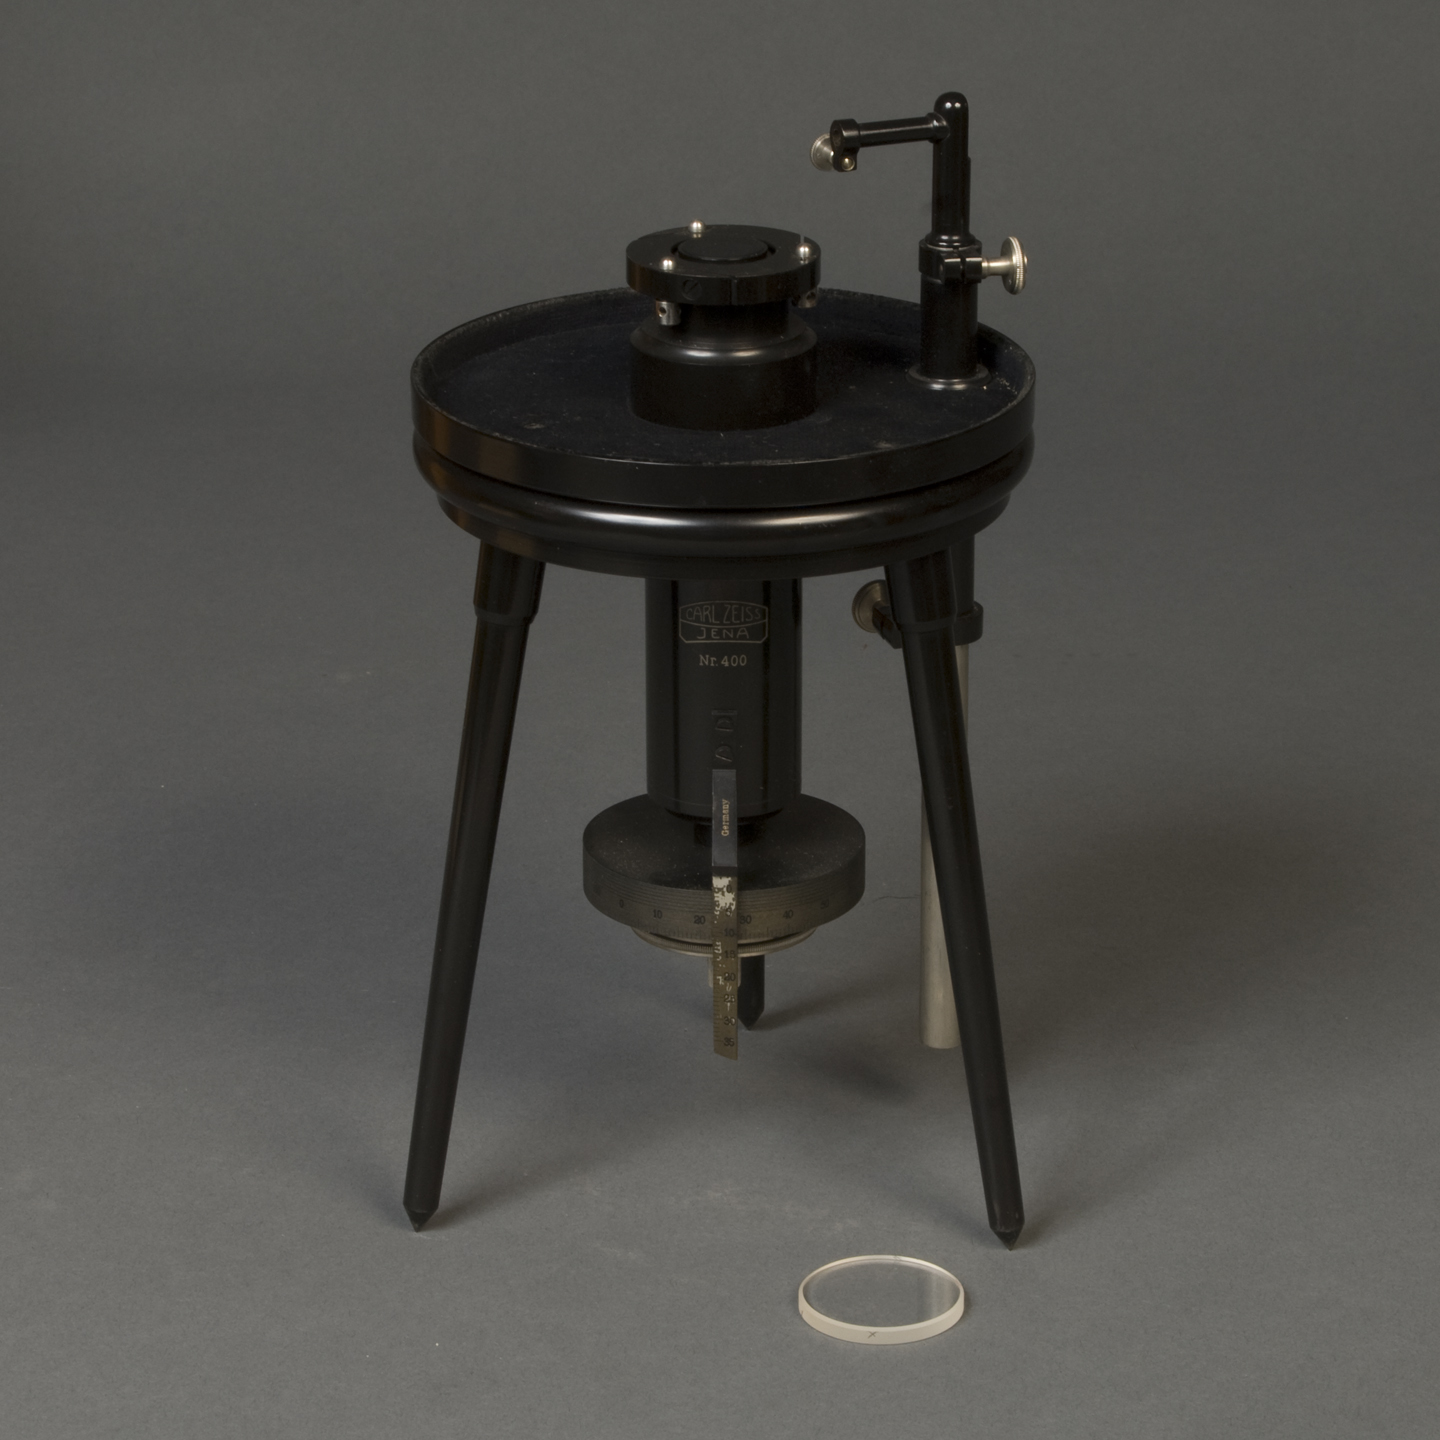 "tripod device with lens. The words ""Carl Zeiss, Jena, Nr. 400"" appear on a cylinder that extends below the tripod's platform. Below that is a graduated dial, presumably for raising and lowering the platform."